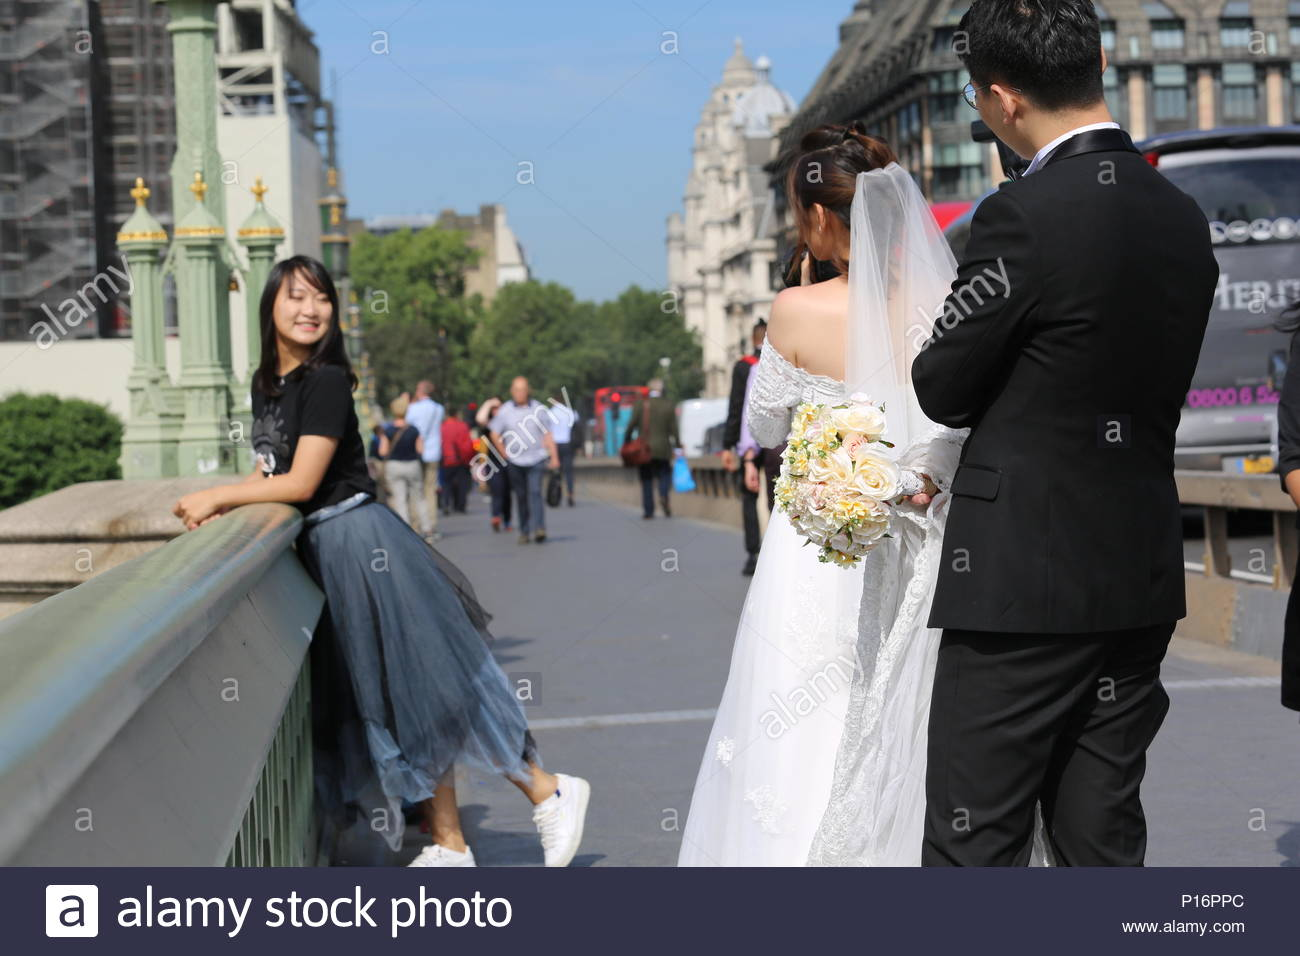 London, UK. 11th June 2018. There was glorious weather in London this morning as early grey skies cleared and brought sunshine to the banks of the Thames. Ideal weather for any one getting married as are Hai and Miao who came to Westminster Bridge with a friend to take wedding photographs. Credit: Clearpix/Alamy Live News Stock Photo